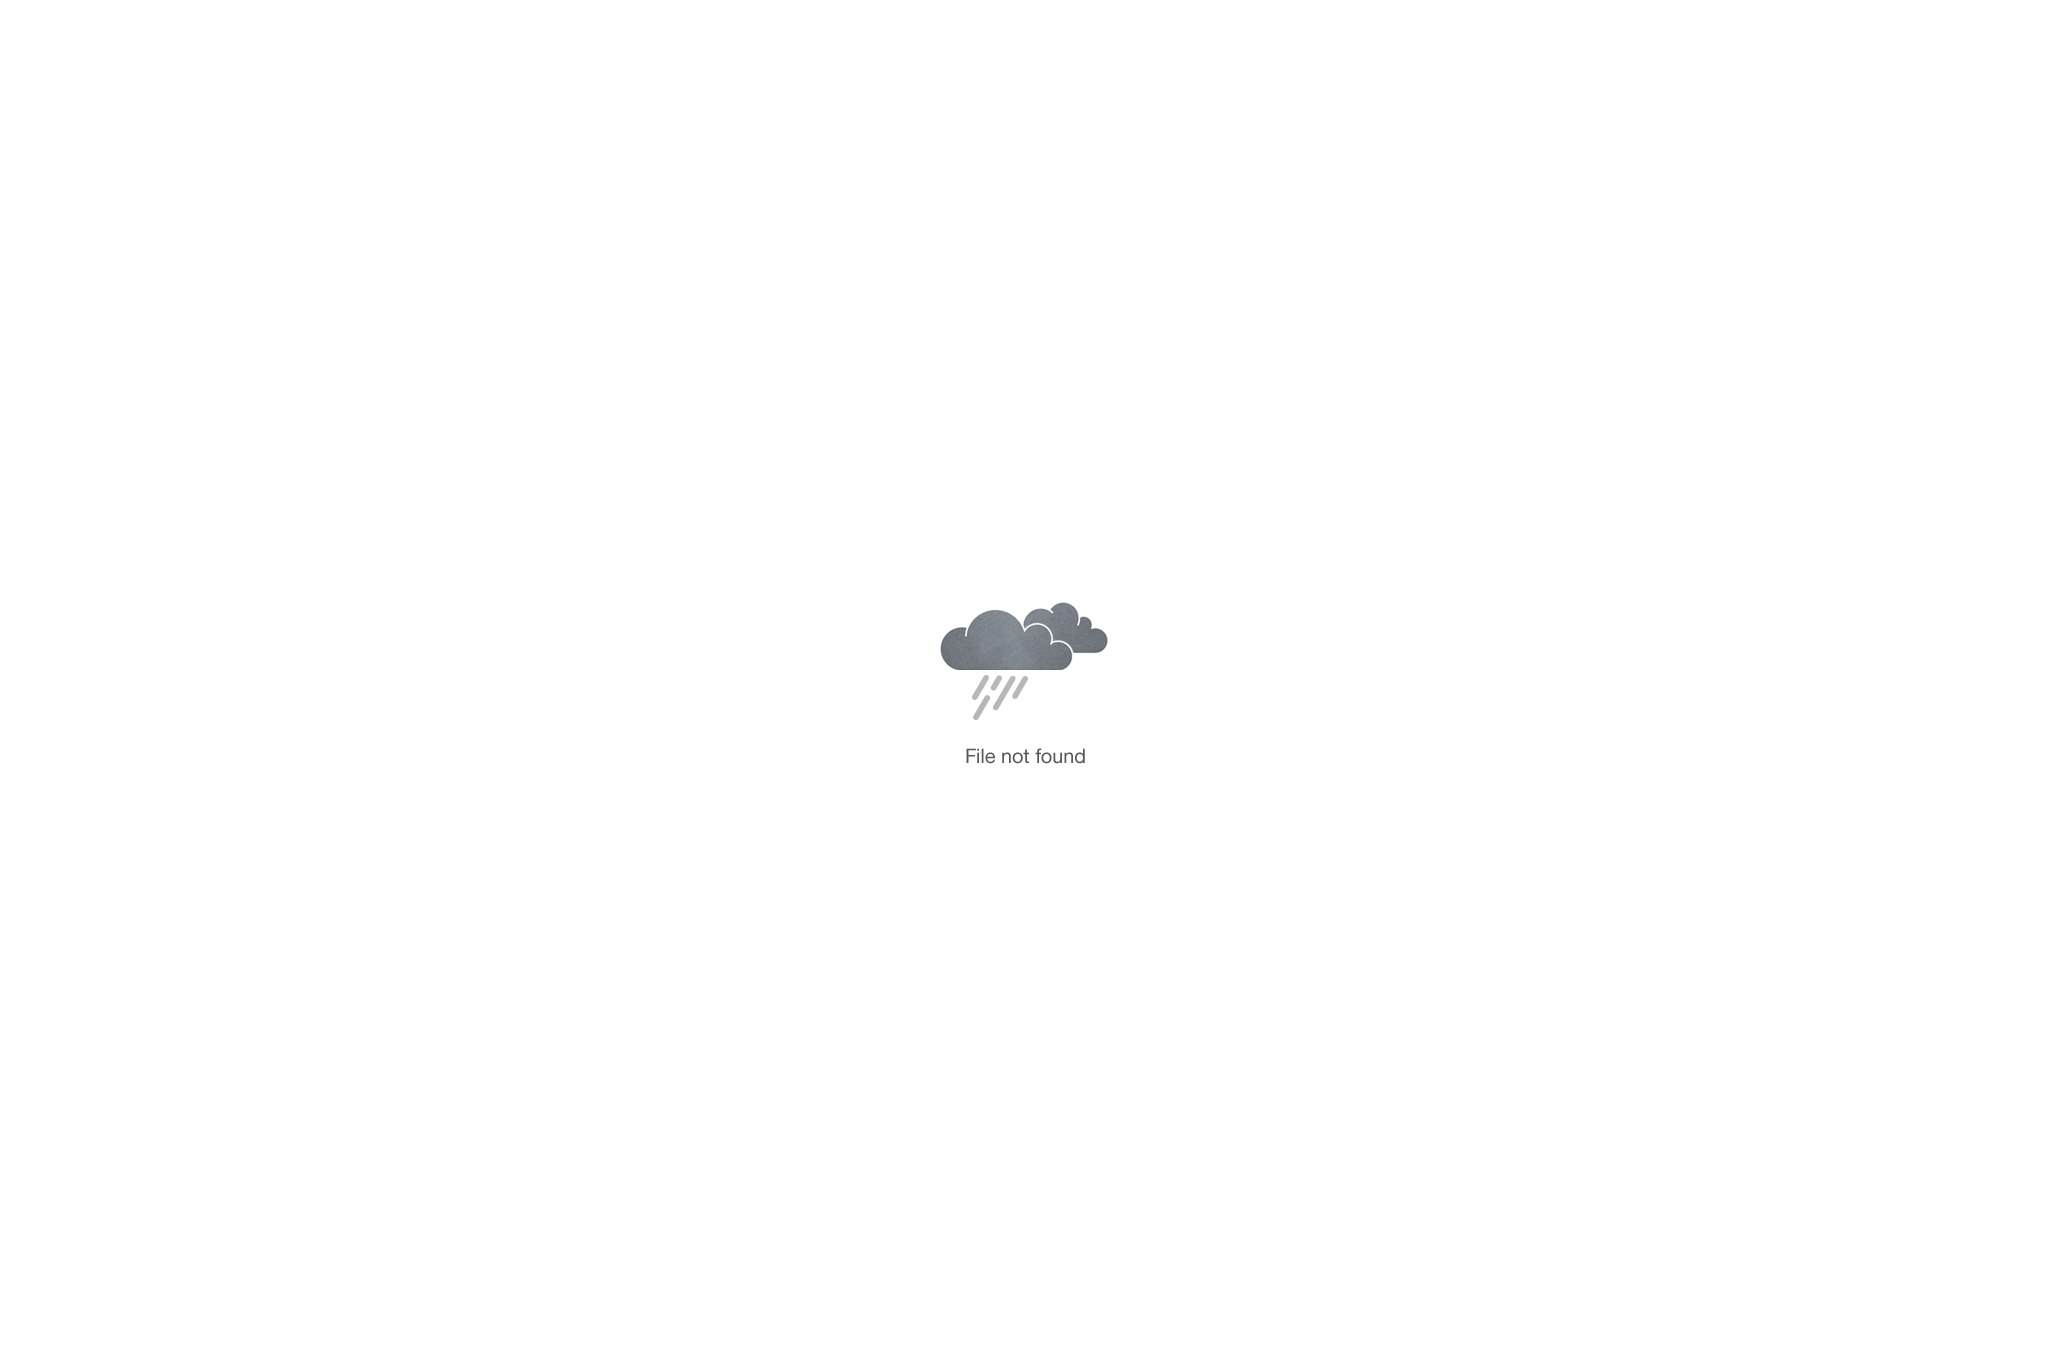 Equipe 1 féminine-Prénational - Chambery Volley Ball-Volley-Ball-Sponsorise-me-image-4